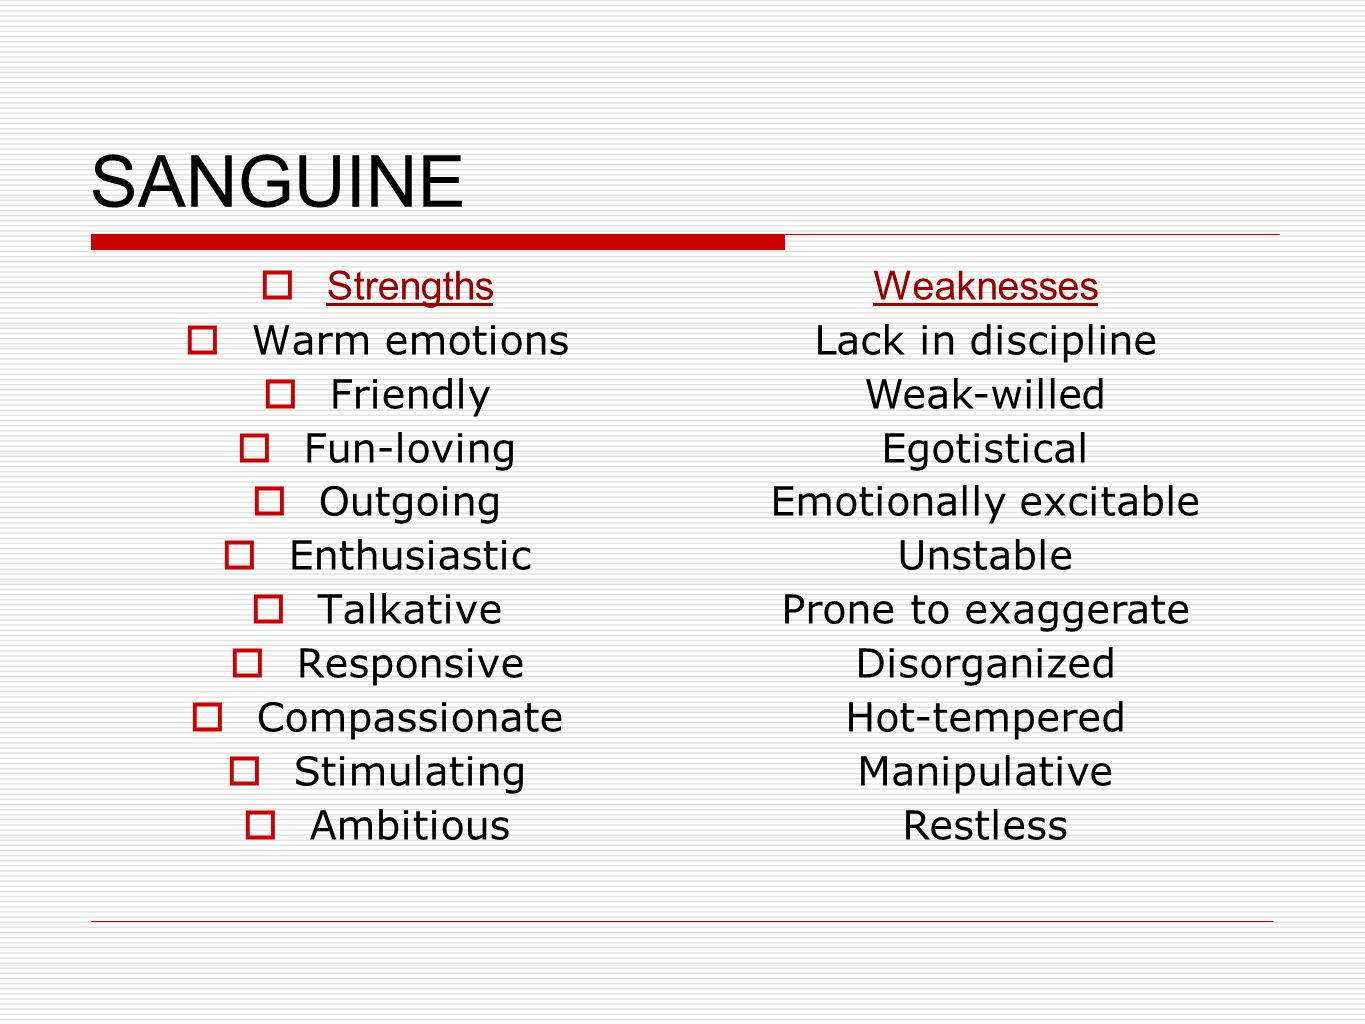 SANGUINE  Strengths  Warm emotions  Friendly  Fun-loving  Outgoing  Enthusiastic  Talkative  Responsive  Compassionate  Stimulating  Ambitious Weaknesses Lack in discipline Weak-willed Egotistical Emotionally excitable Unstable Prone to exaggerate Disorganized Hot-tempered Manipulative Restless